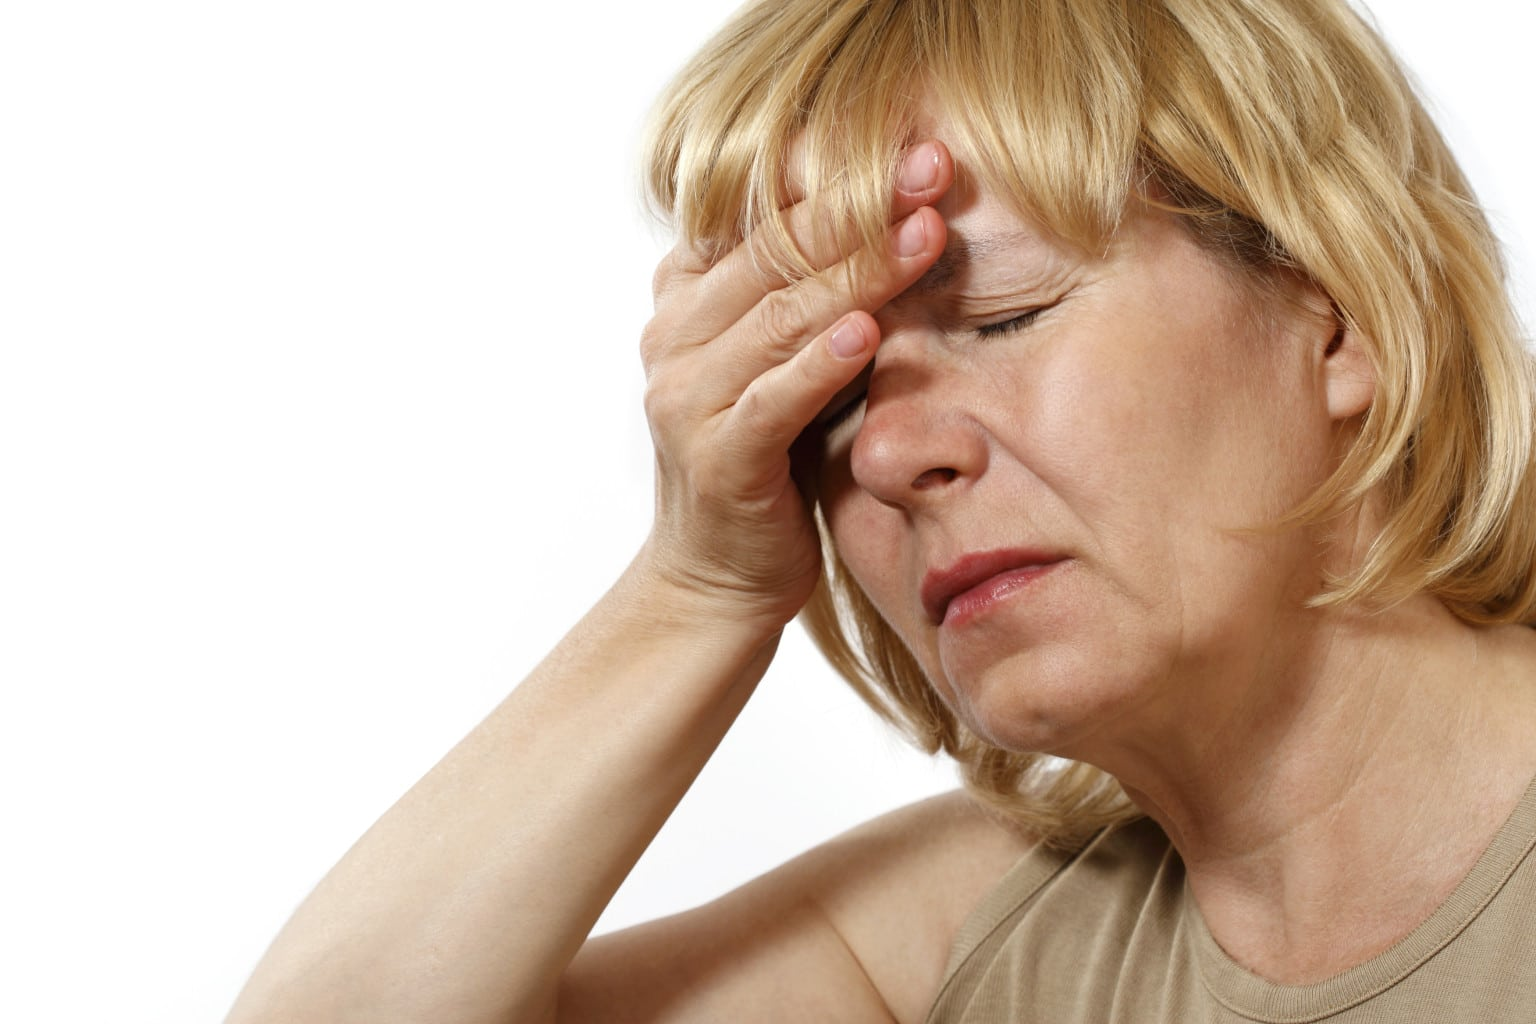 Serious Symptoms Women Encounter During Their Menopause